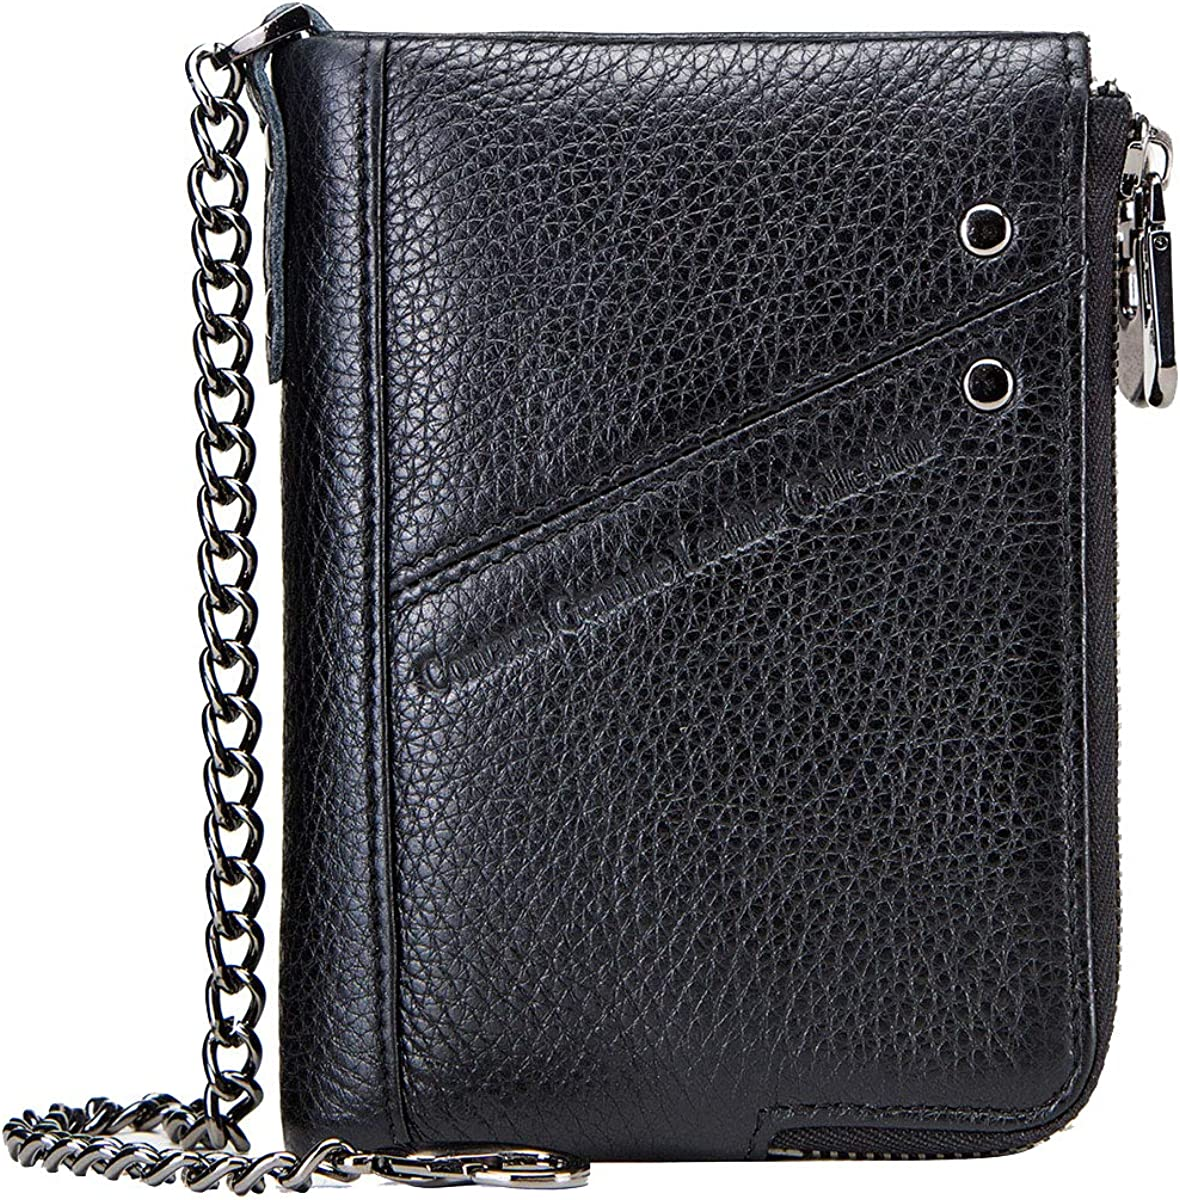 Wallet With Chain For men,Men's wallet RFID Mens Genuine Leather Double Zipper Pocket Bifold Coin Wallet with Anti-Theft Chain